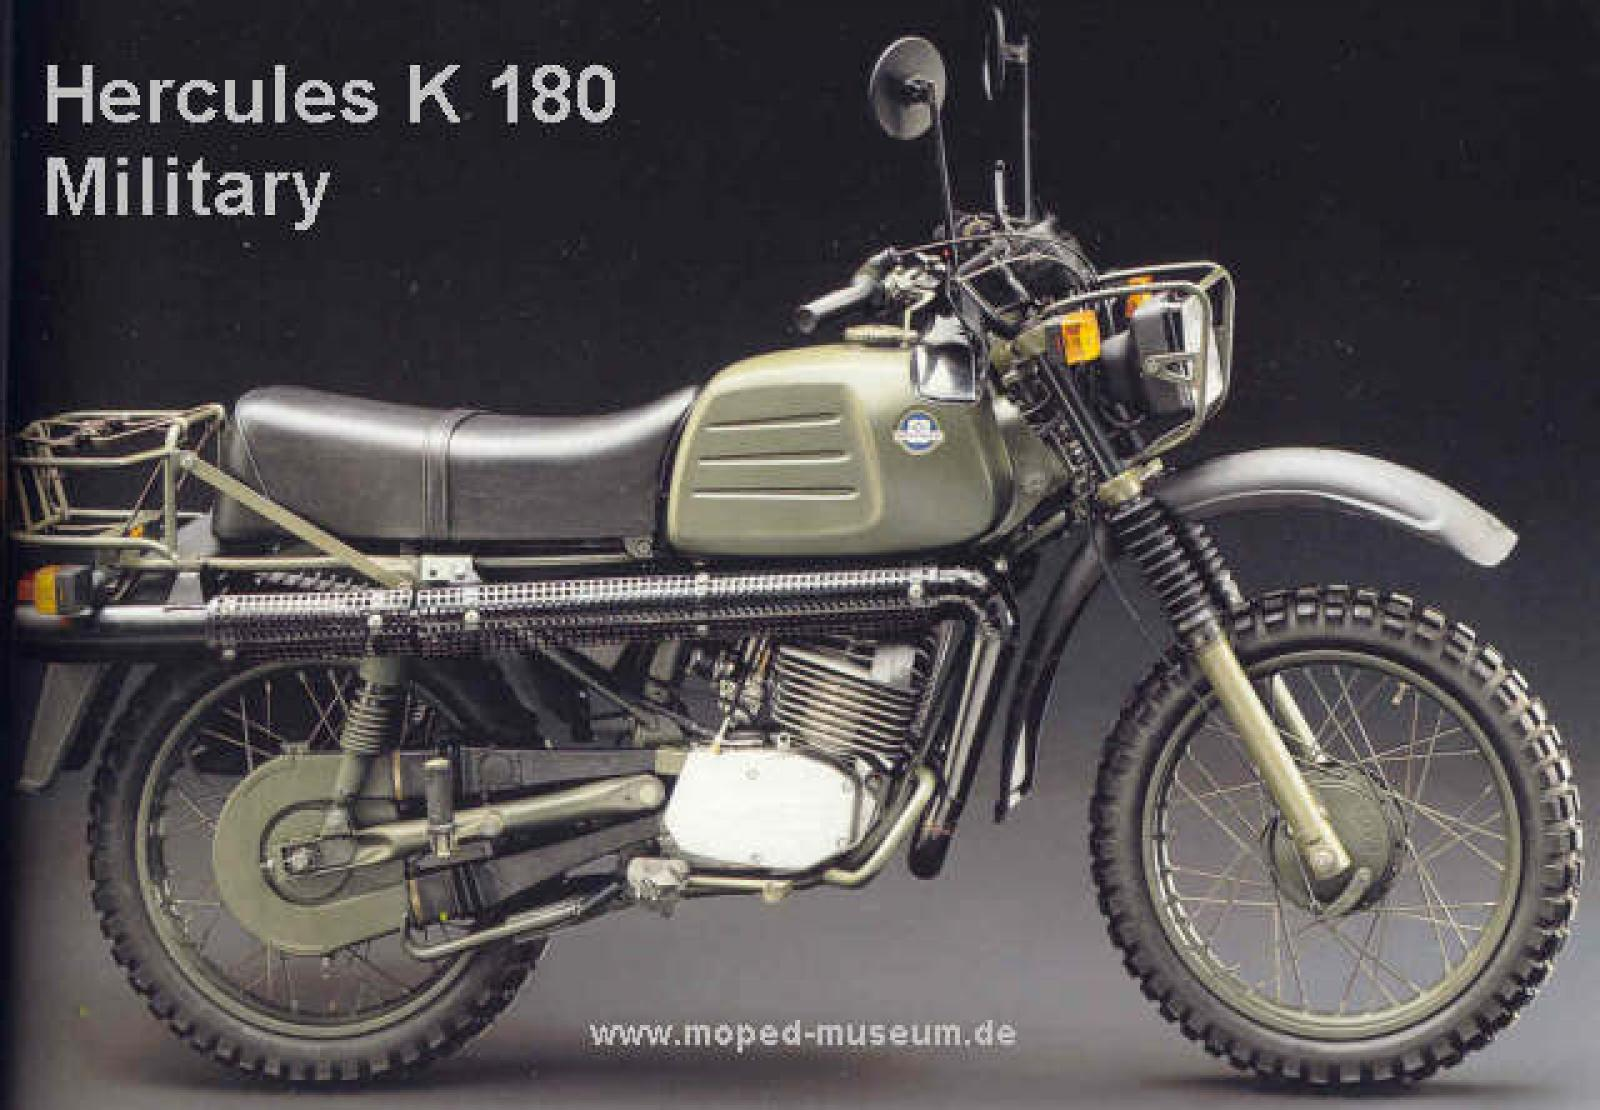 Hercules K 125 Military 1988 images #74645